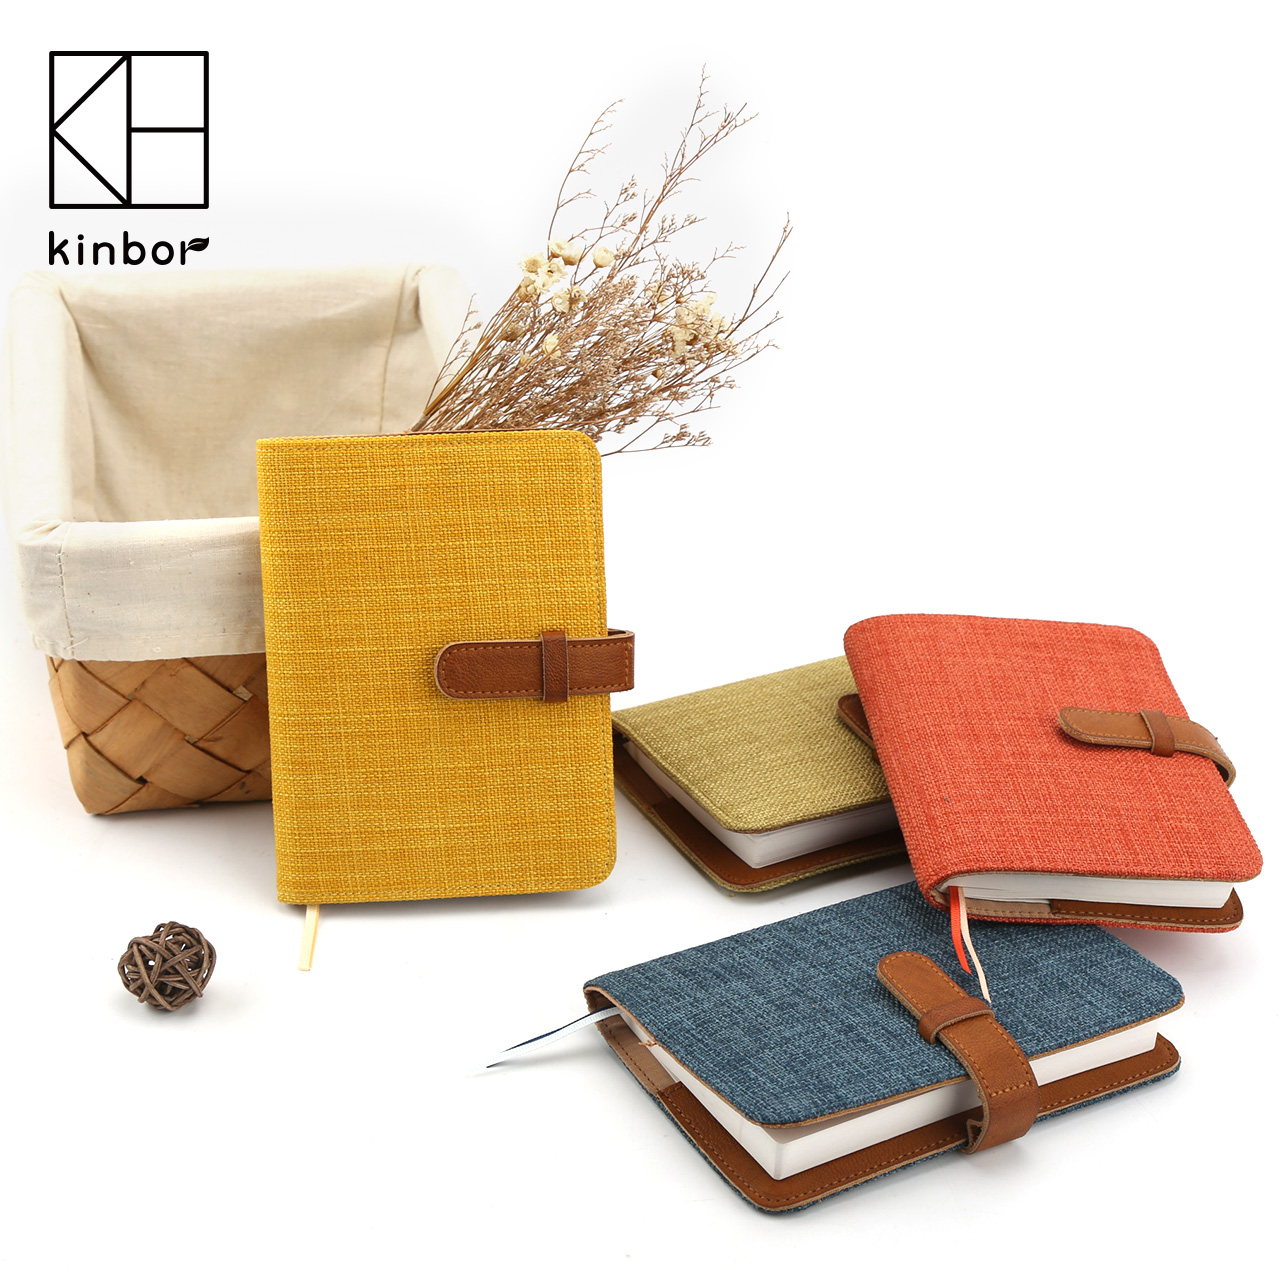 Kinbor Hobonichi Style A6 Cloth&PU Cover Notebook Undated Calender Planner Journal Diary Travel Notebook Gift Stationery pu leather cover planner notebook travel journal diary book exercise composition binding note notepad gift stationery 2017